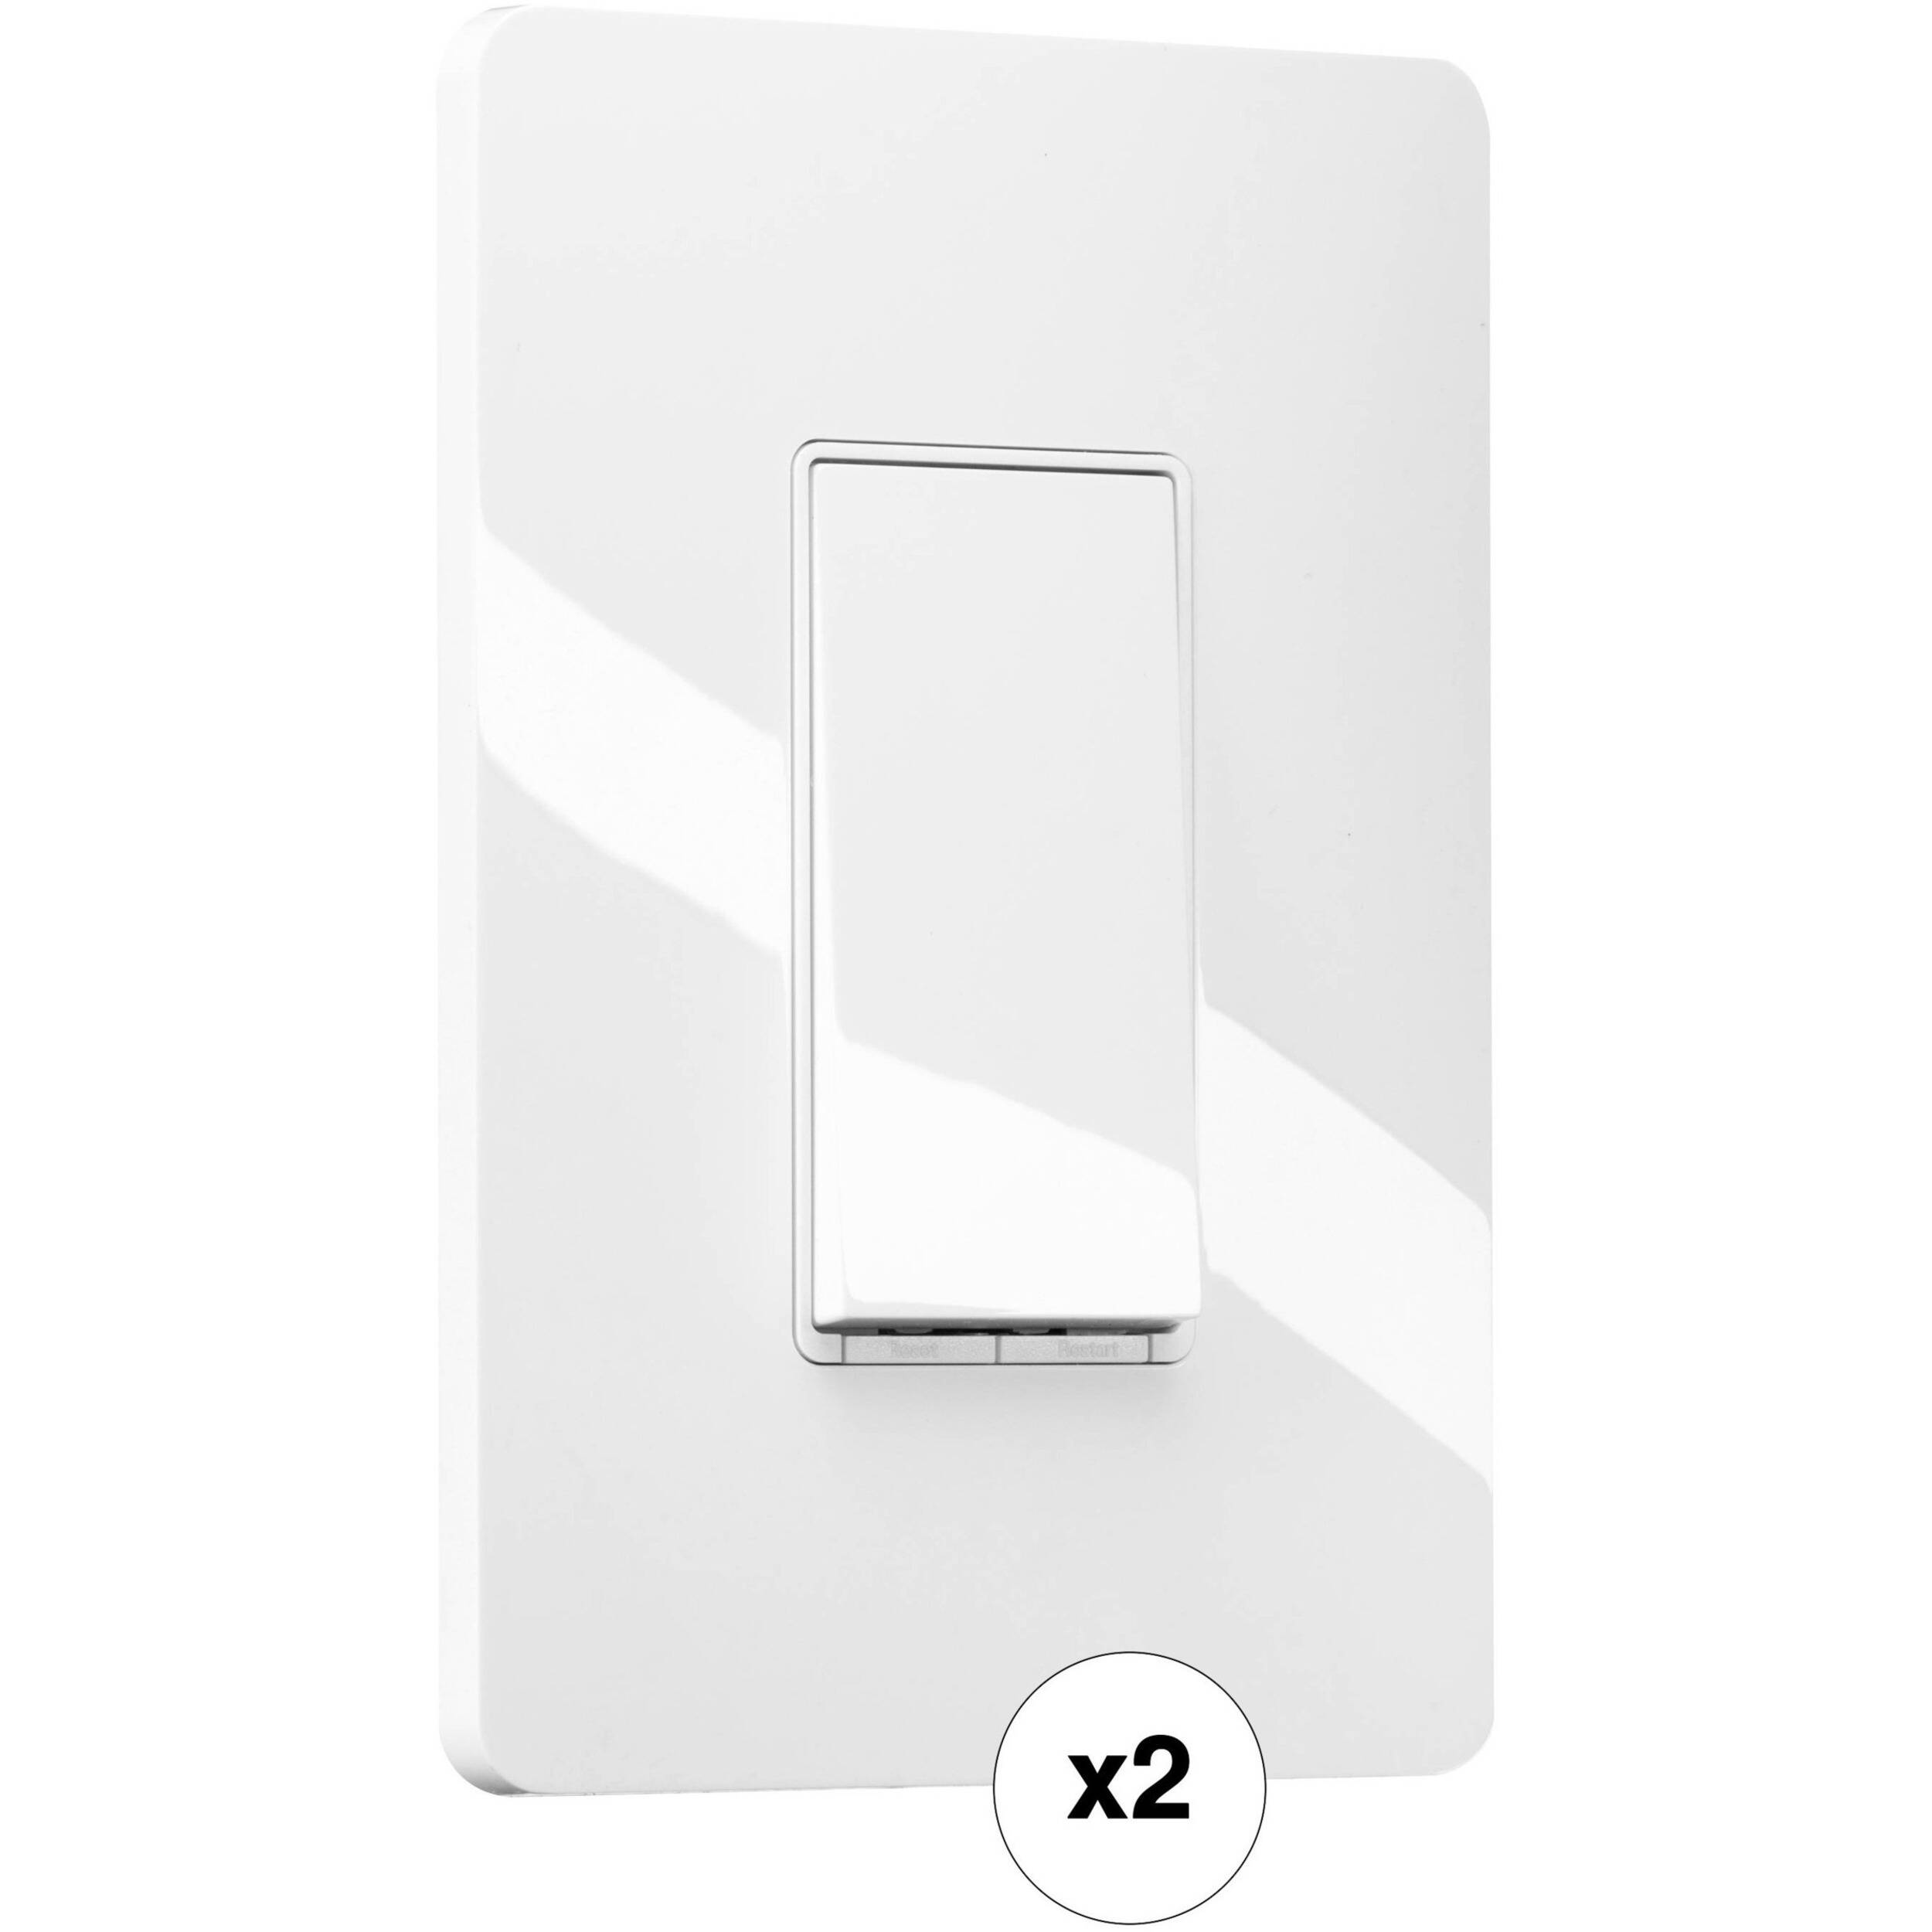 TP-Link HS200 Smart Wi-Fi Light Switch (2-Pack) B&H Photo Video